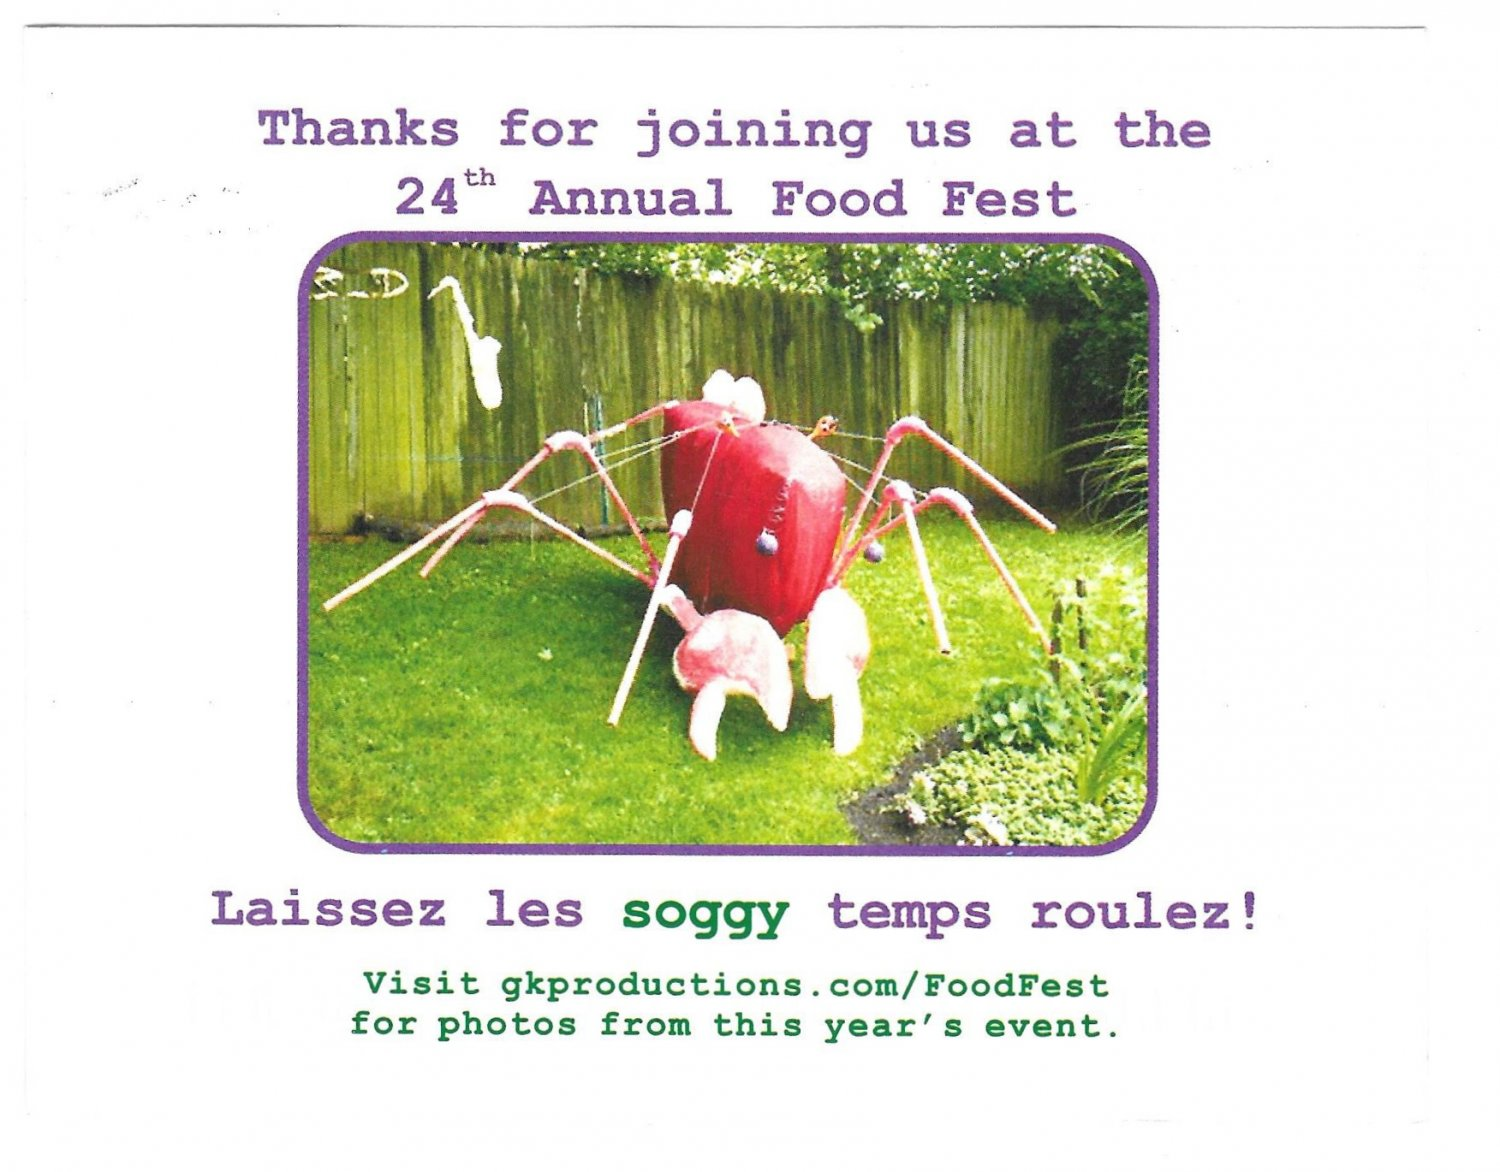 24th Annual Food Fest Lassez les soggy temps roulez Thank You Postcard 2008